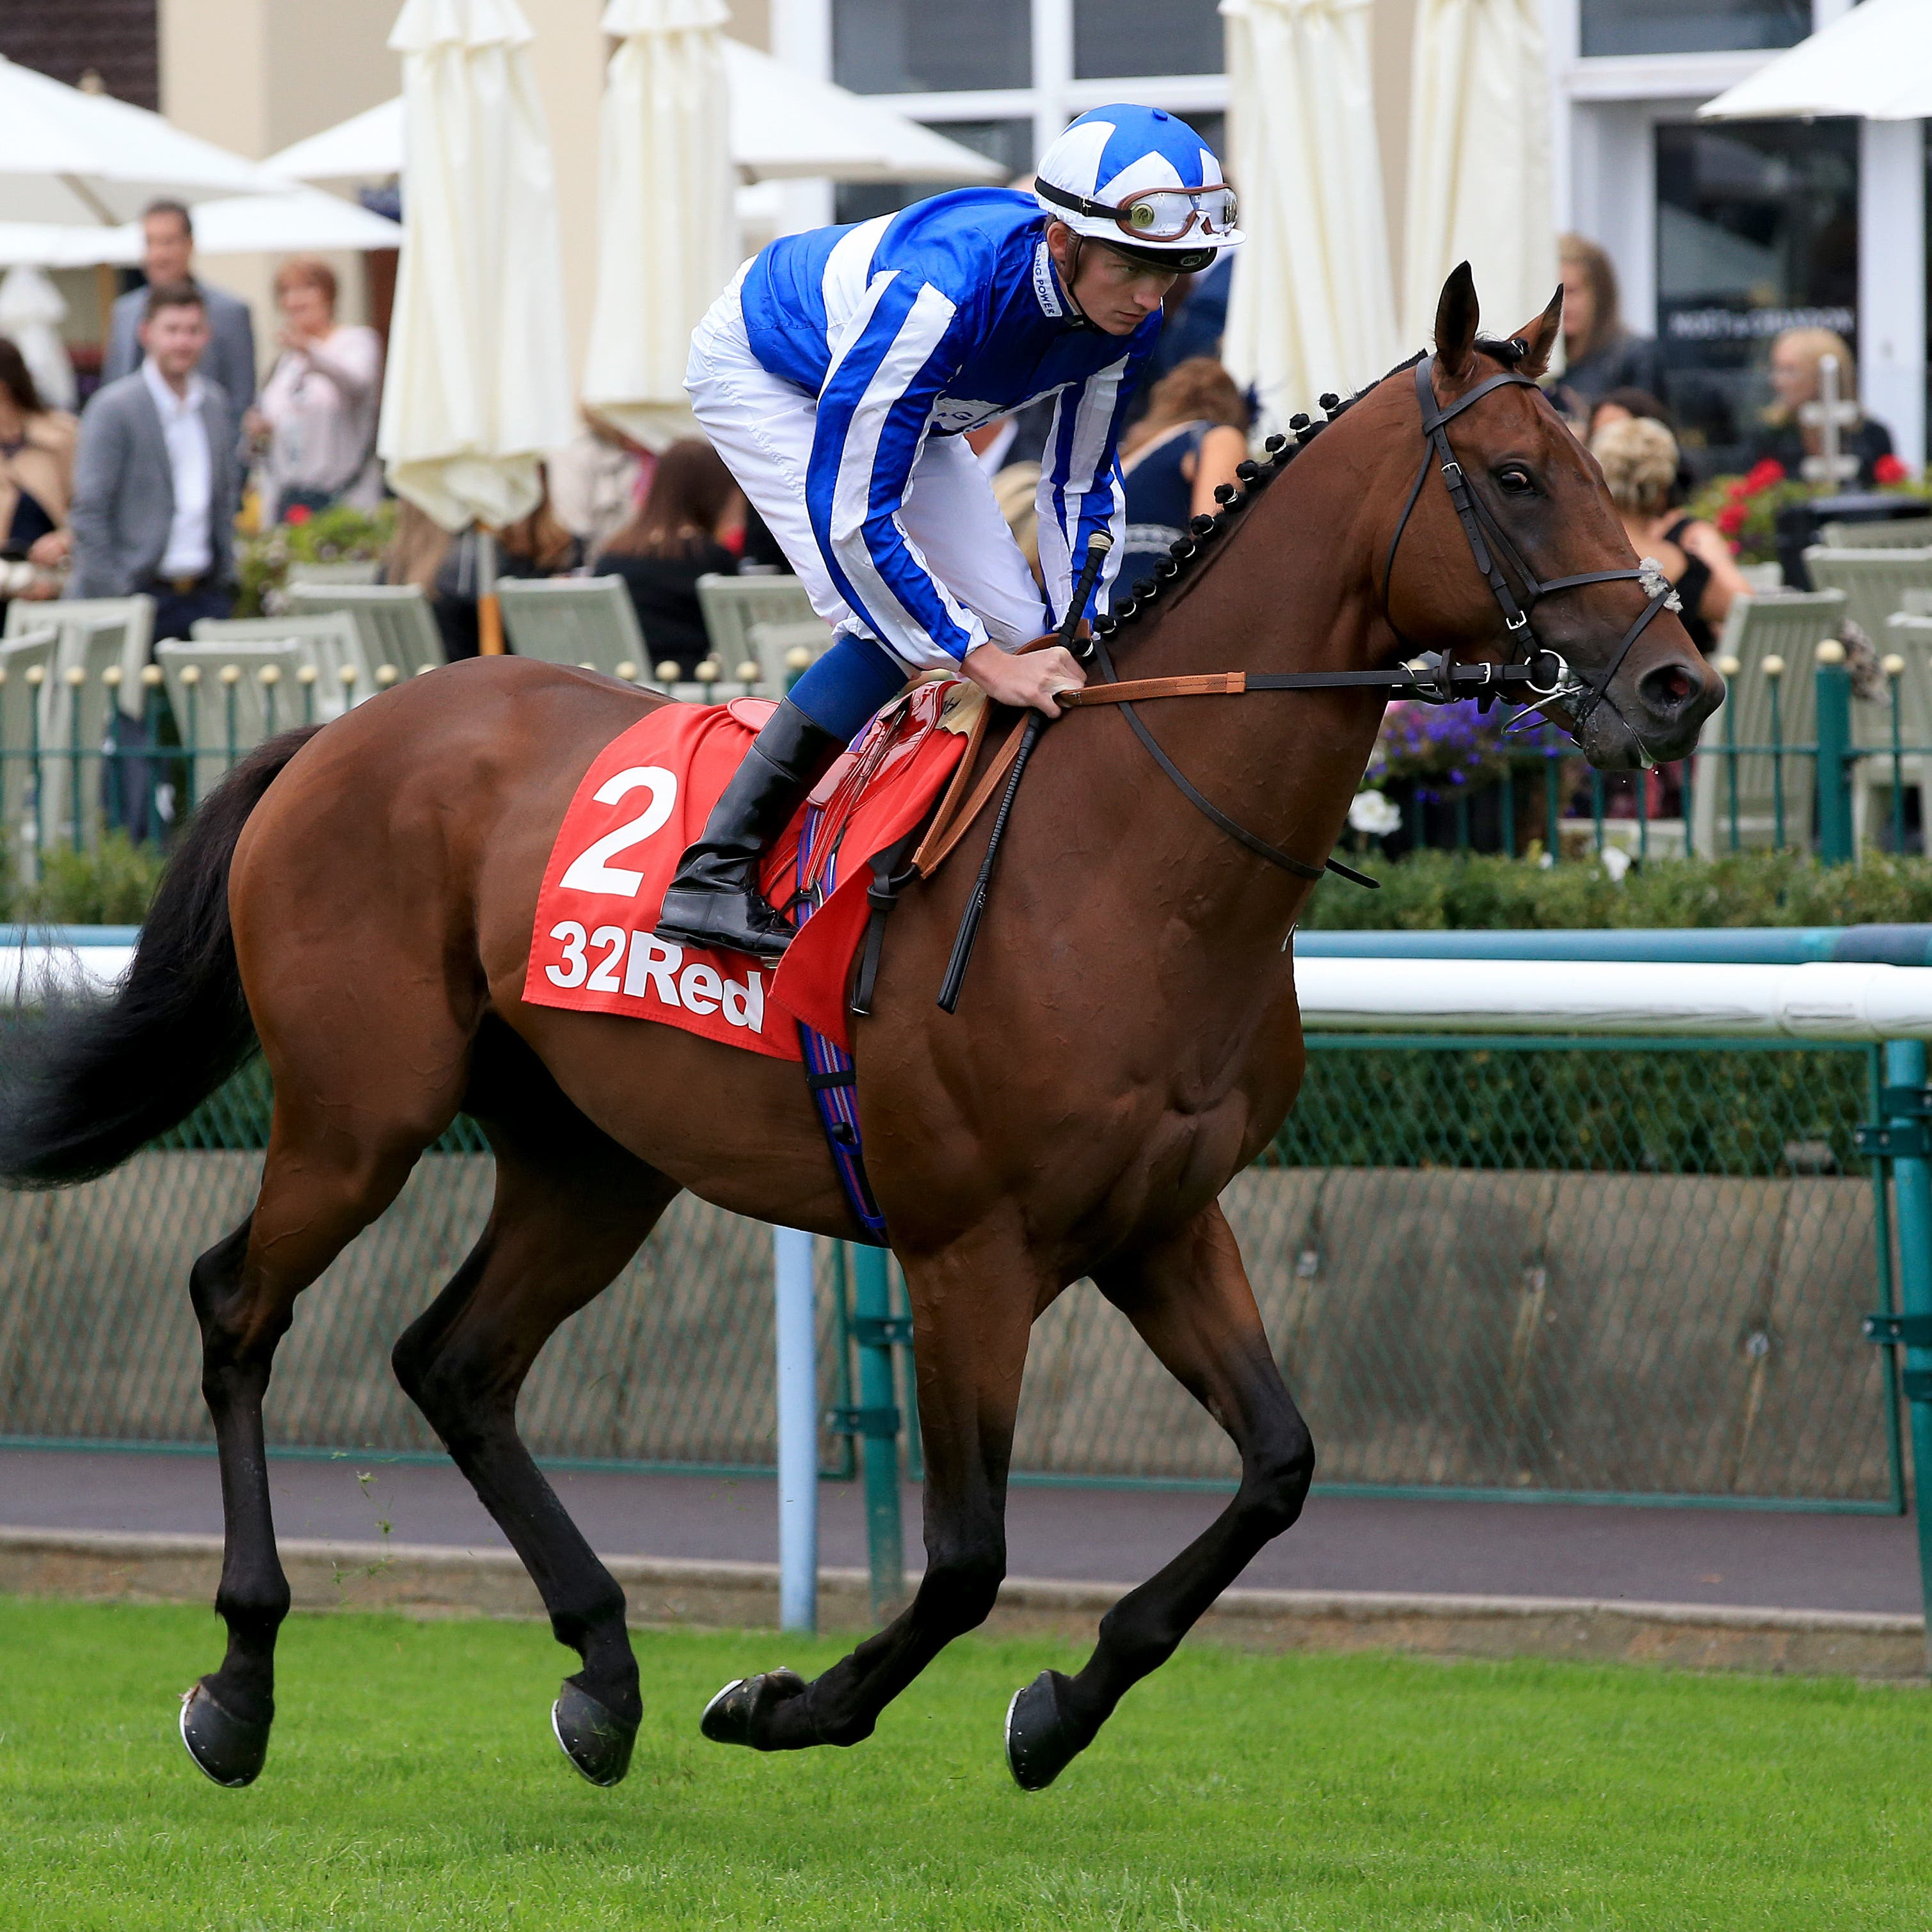 Donjuan Triumphant goes for glory at Doncaster